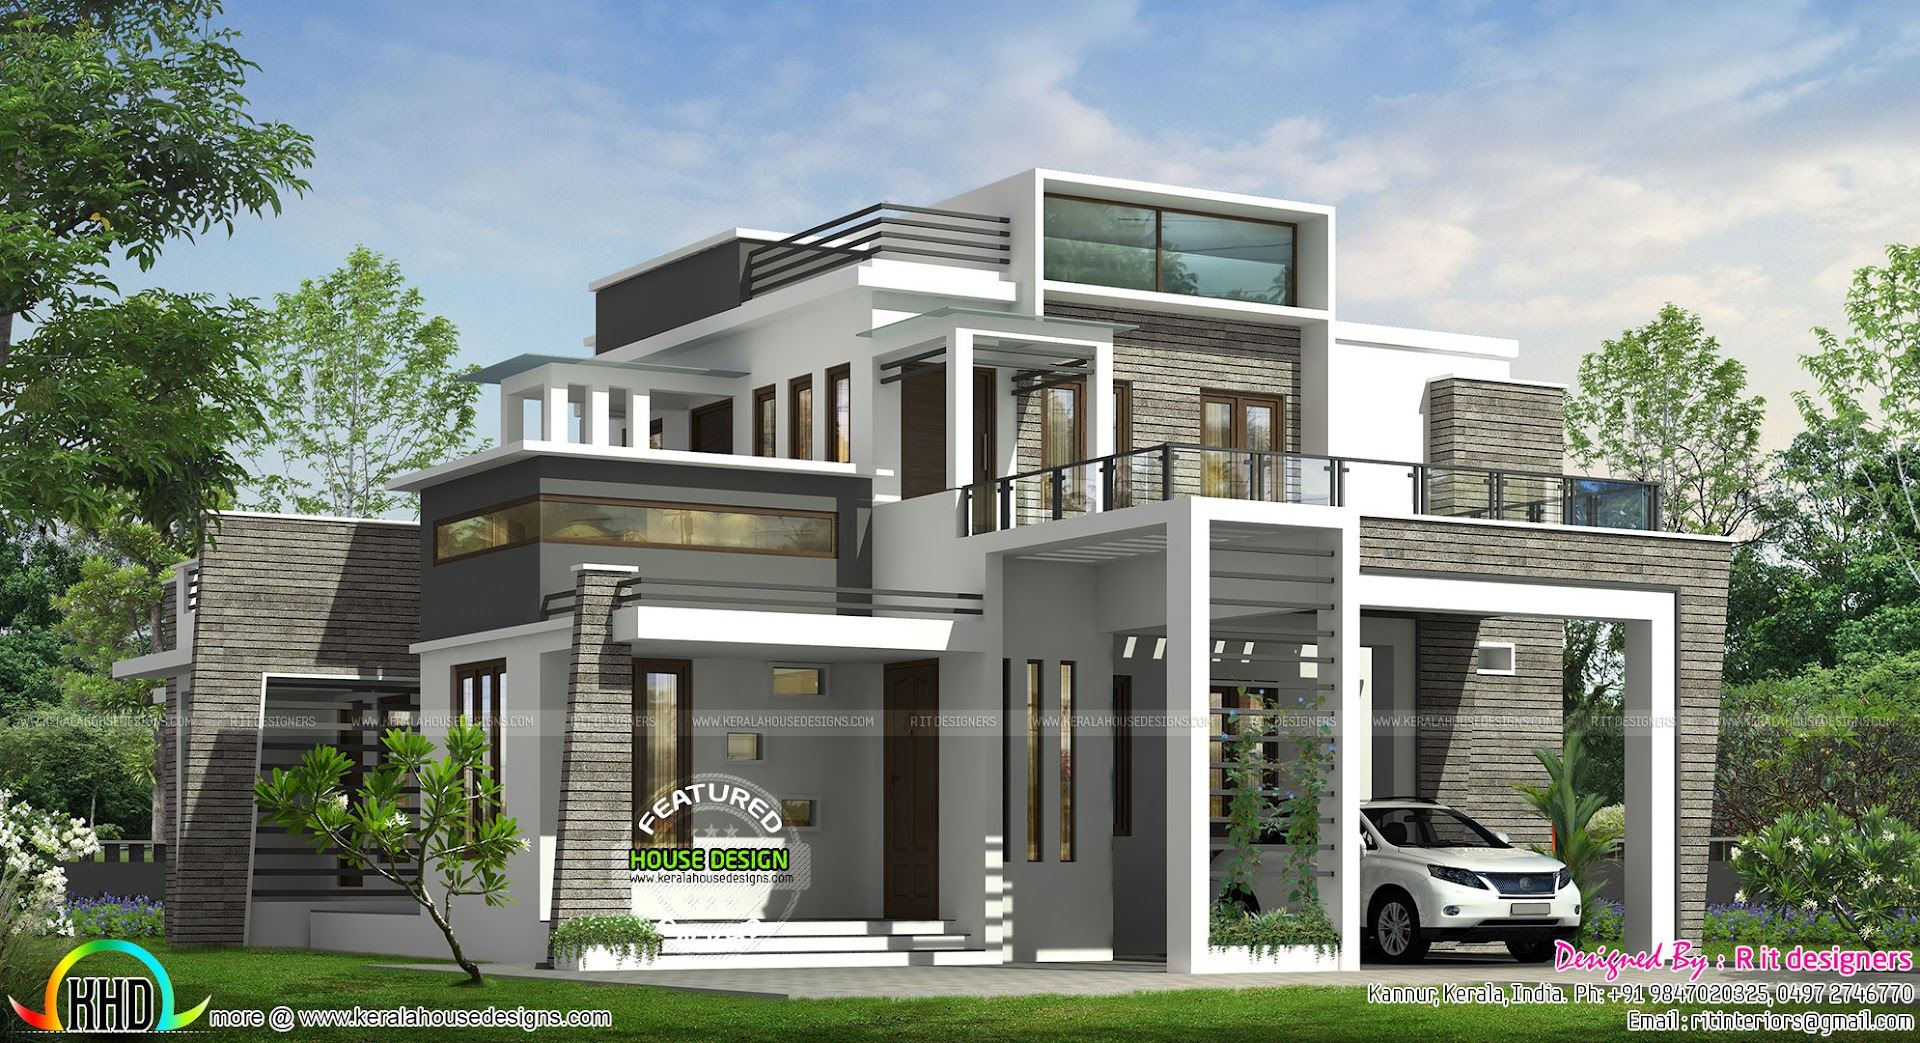 4 bhk modern box type house kerala home design and floor for Modern box house design